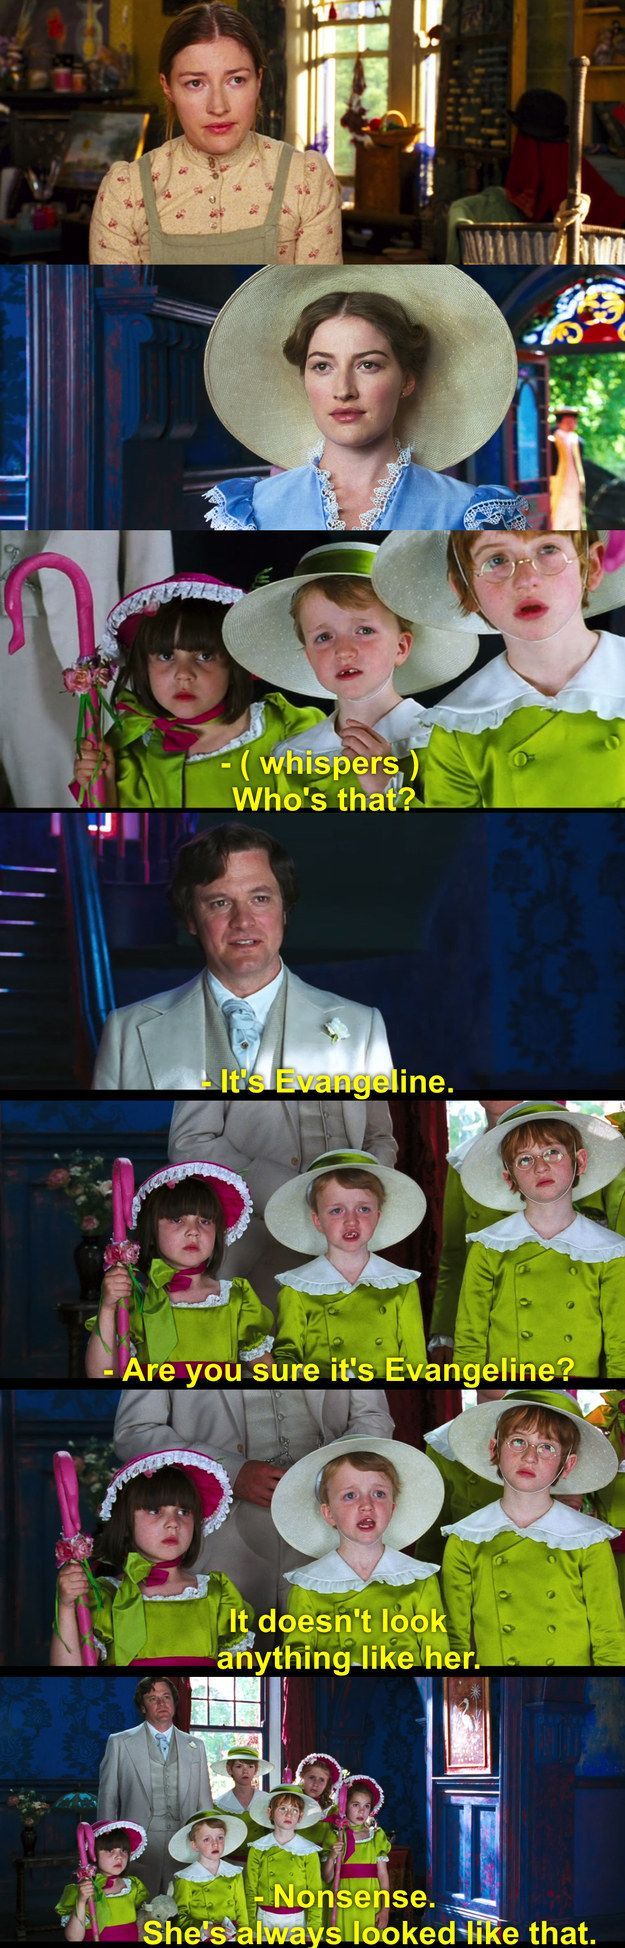 Nanny McPhee: When the children are shocked by Evangeline's transformation, but Mr. Brown says she's always looked that beautiful.